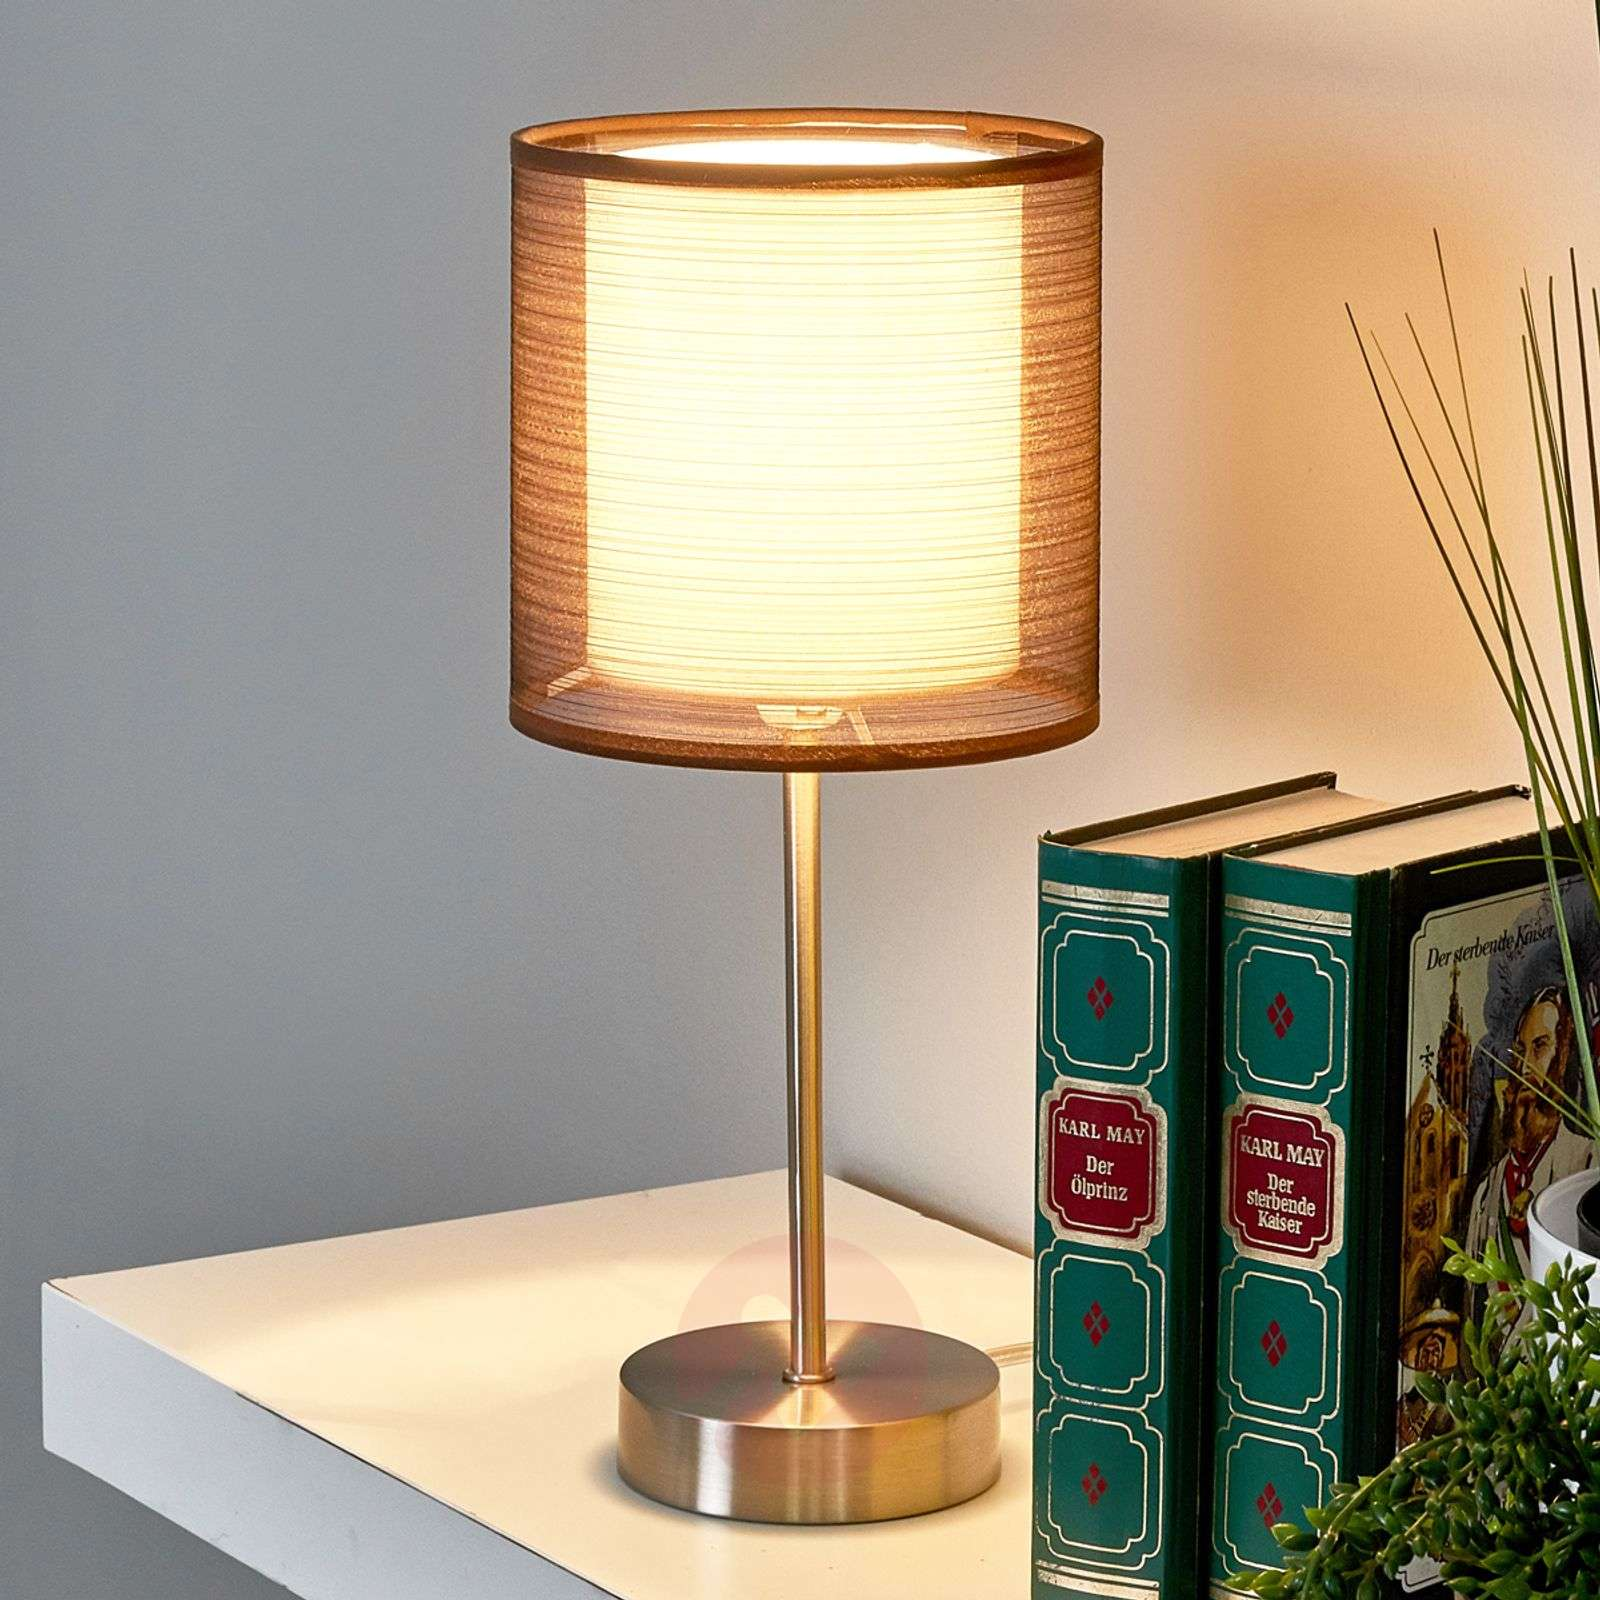 Nica bedside table lamp with brown fabric shade-4018012-02